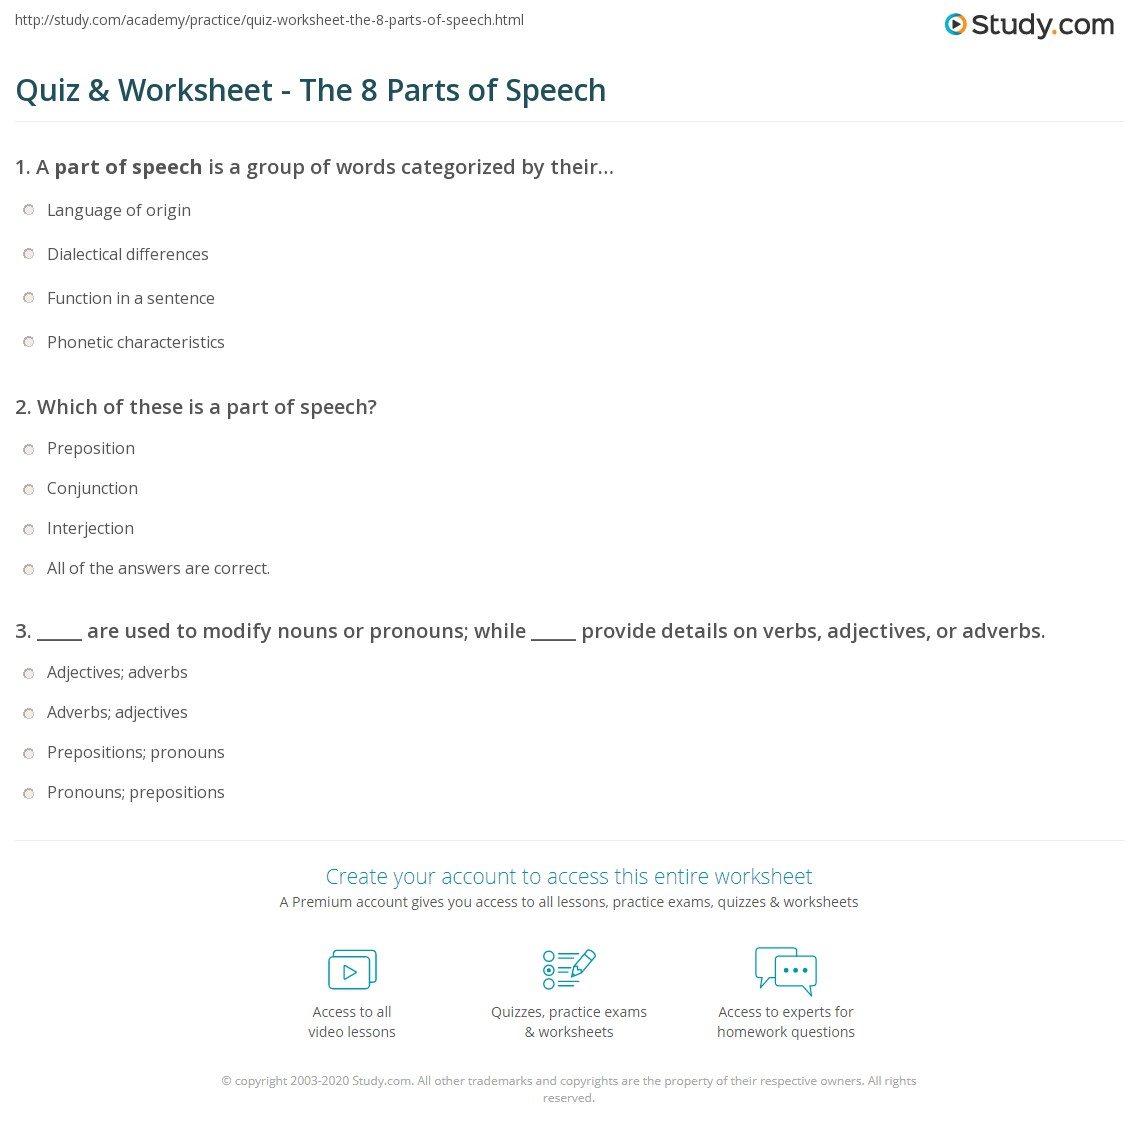 Worksheets 8 Parts Of Speech Worksheet quiz worksheet the 8 parts of speech study com print what are definition examples worksheet